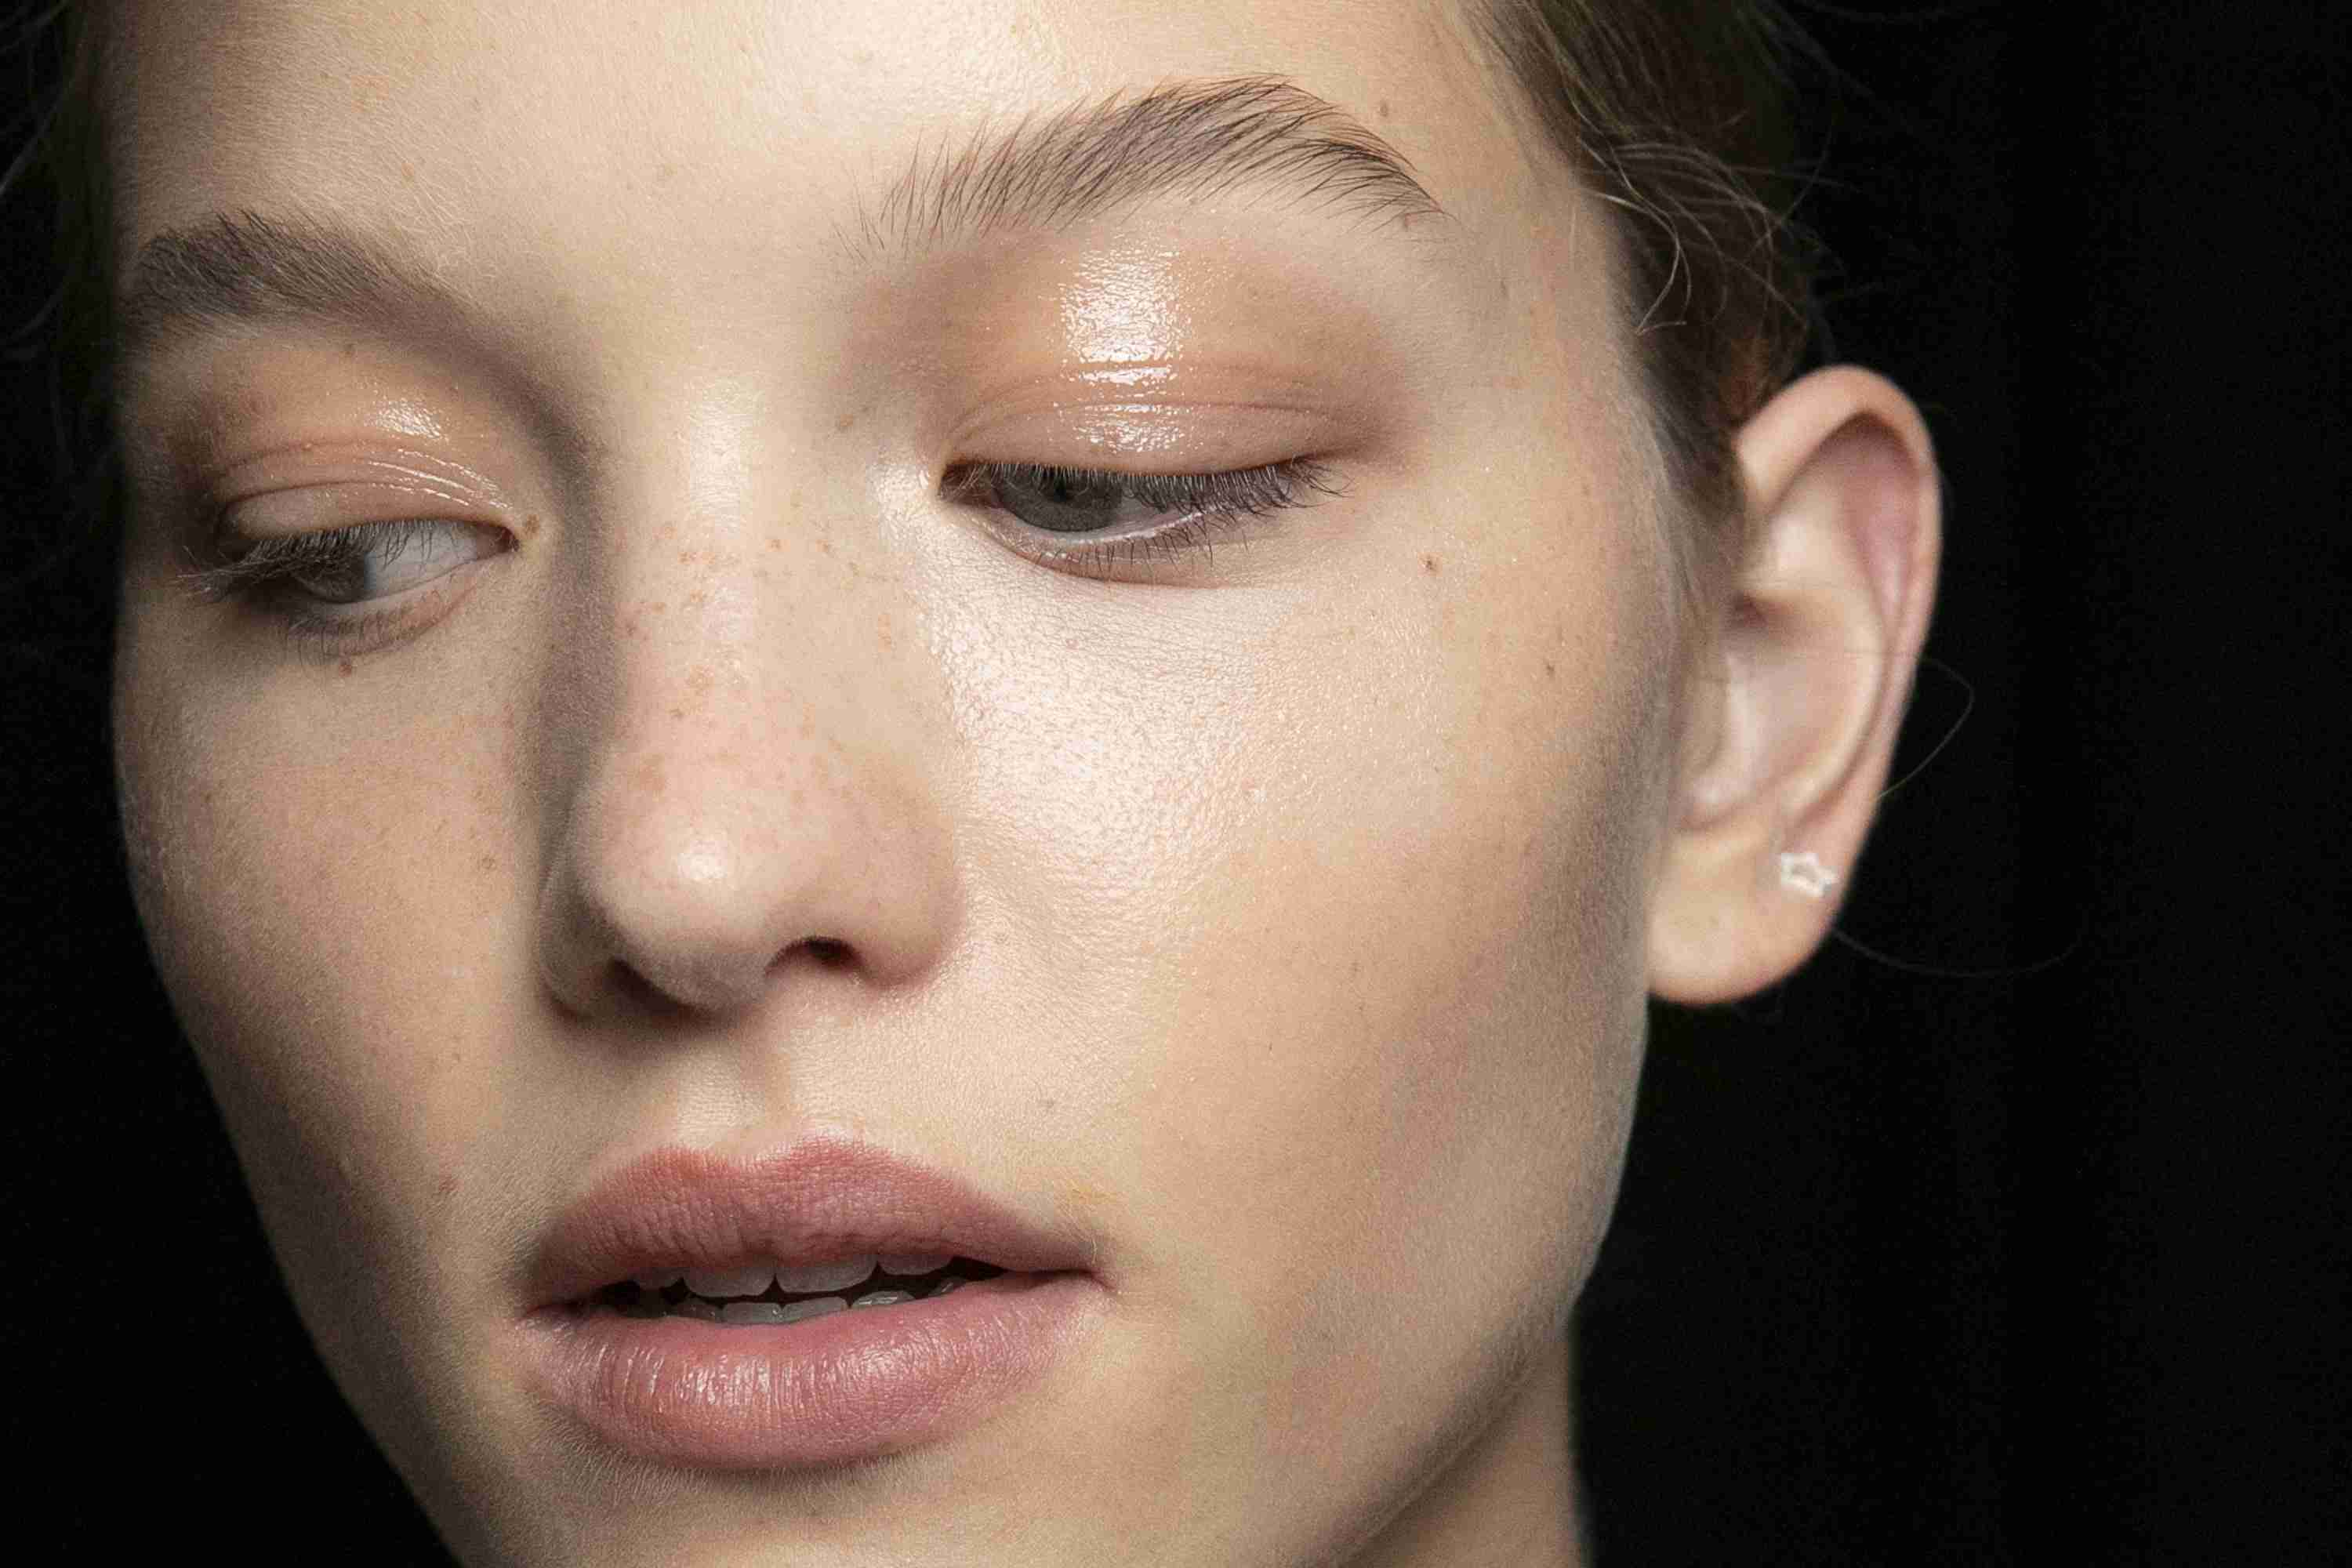 The Best Types of Facial Fillers and Where to Get Them: A Guide